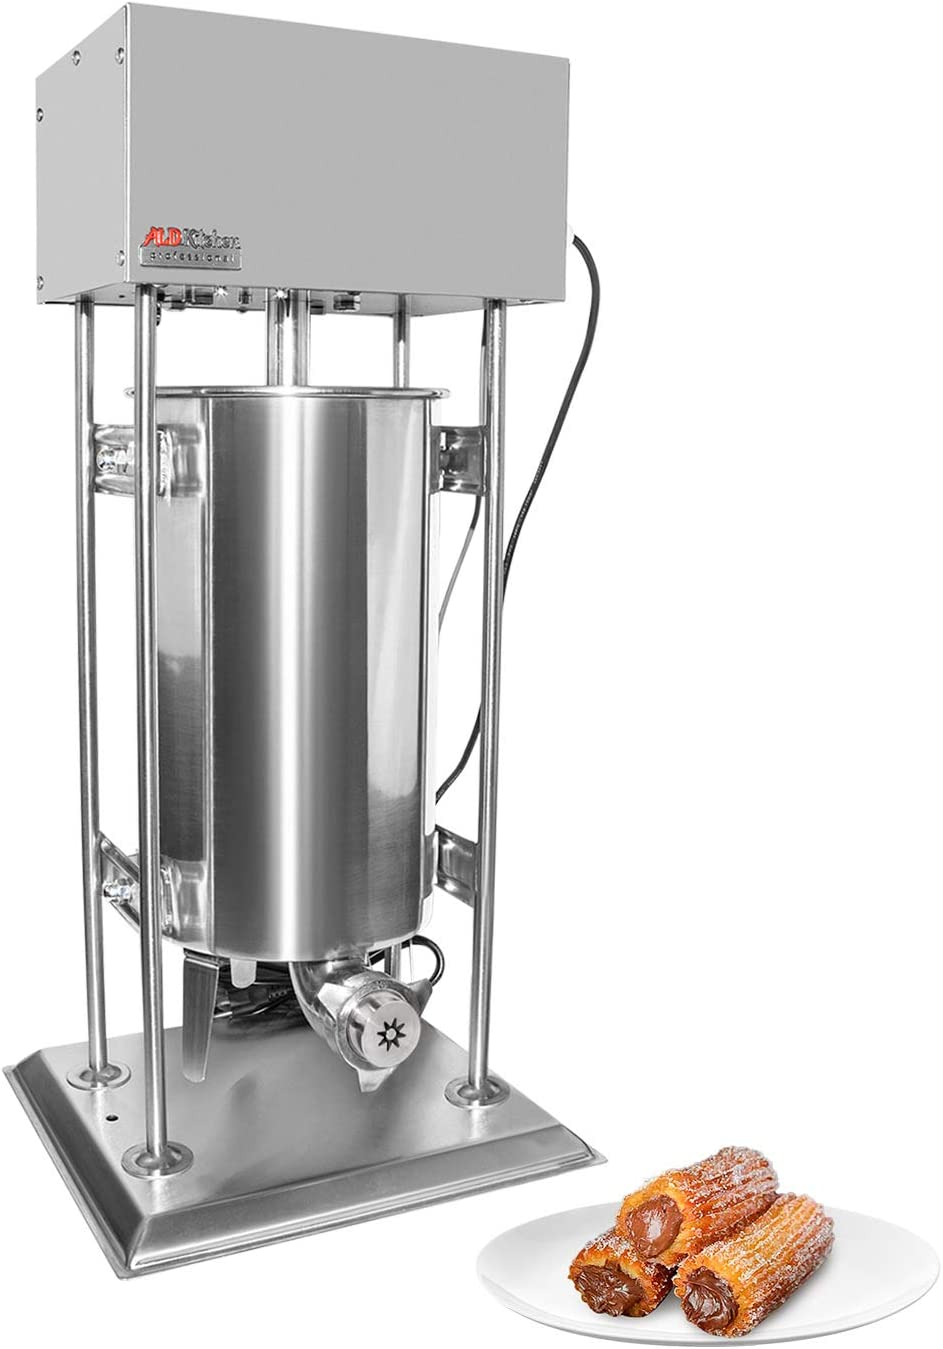 ALDKitchen Churro Maker   Vertical Type Electric Churro Machine   Stainless Steel   15L Capacity   Pedal Control